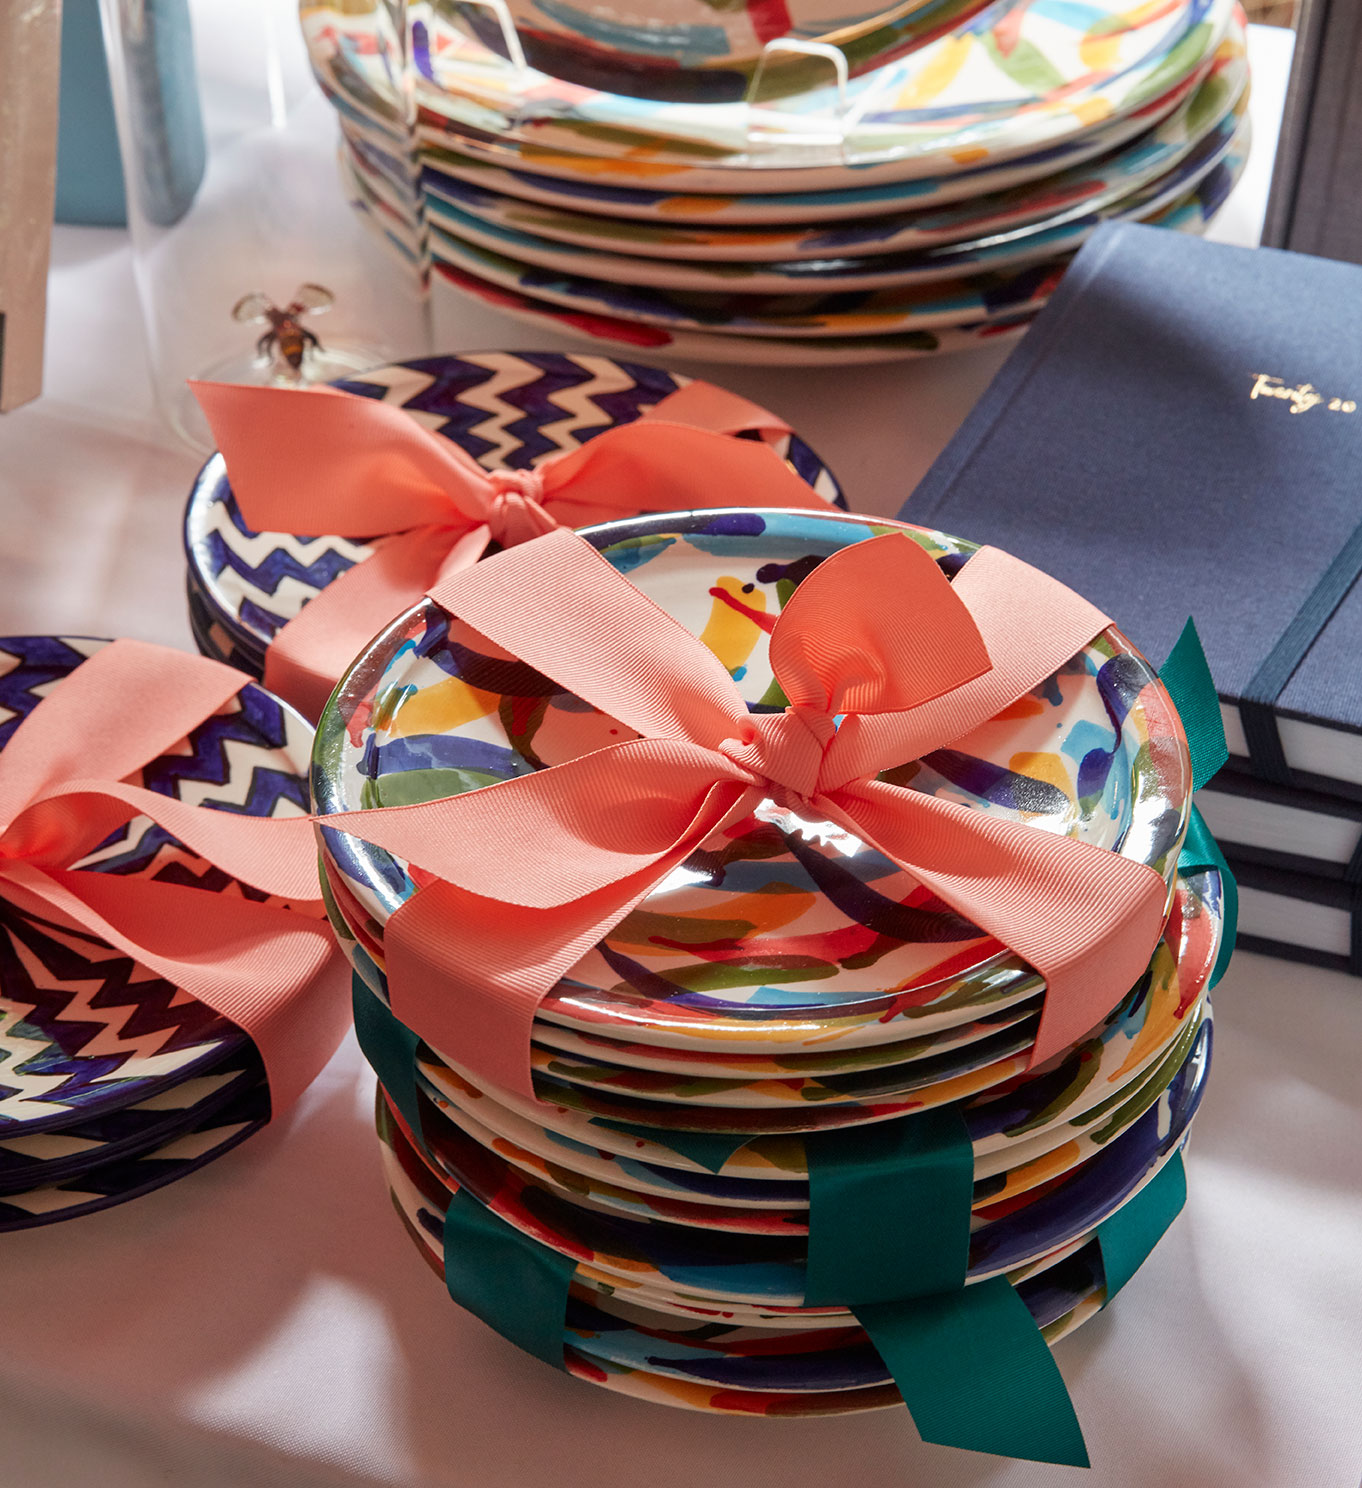 colorful plates for sale at the souk celebration